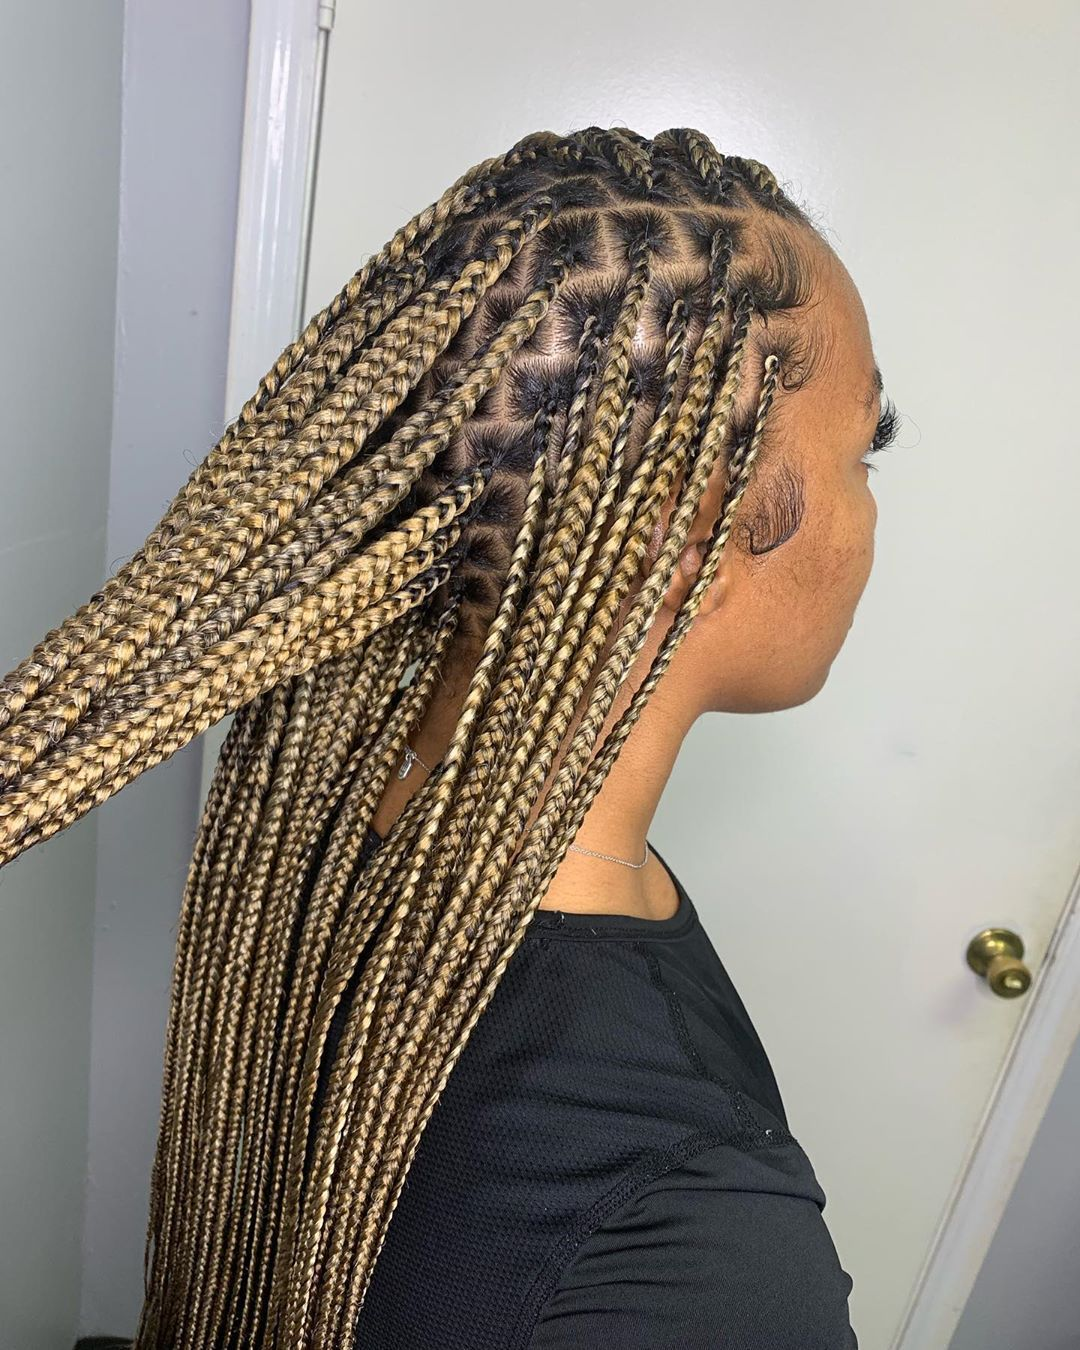 1582617301 426 30 Braids Hairstyles 2020 for Ultra Stylish Looks